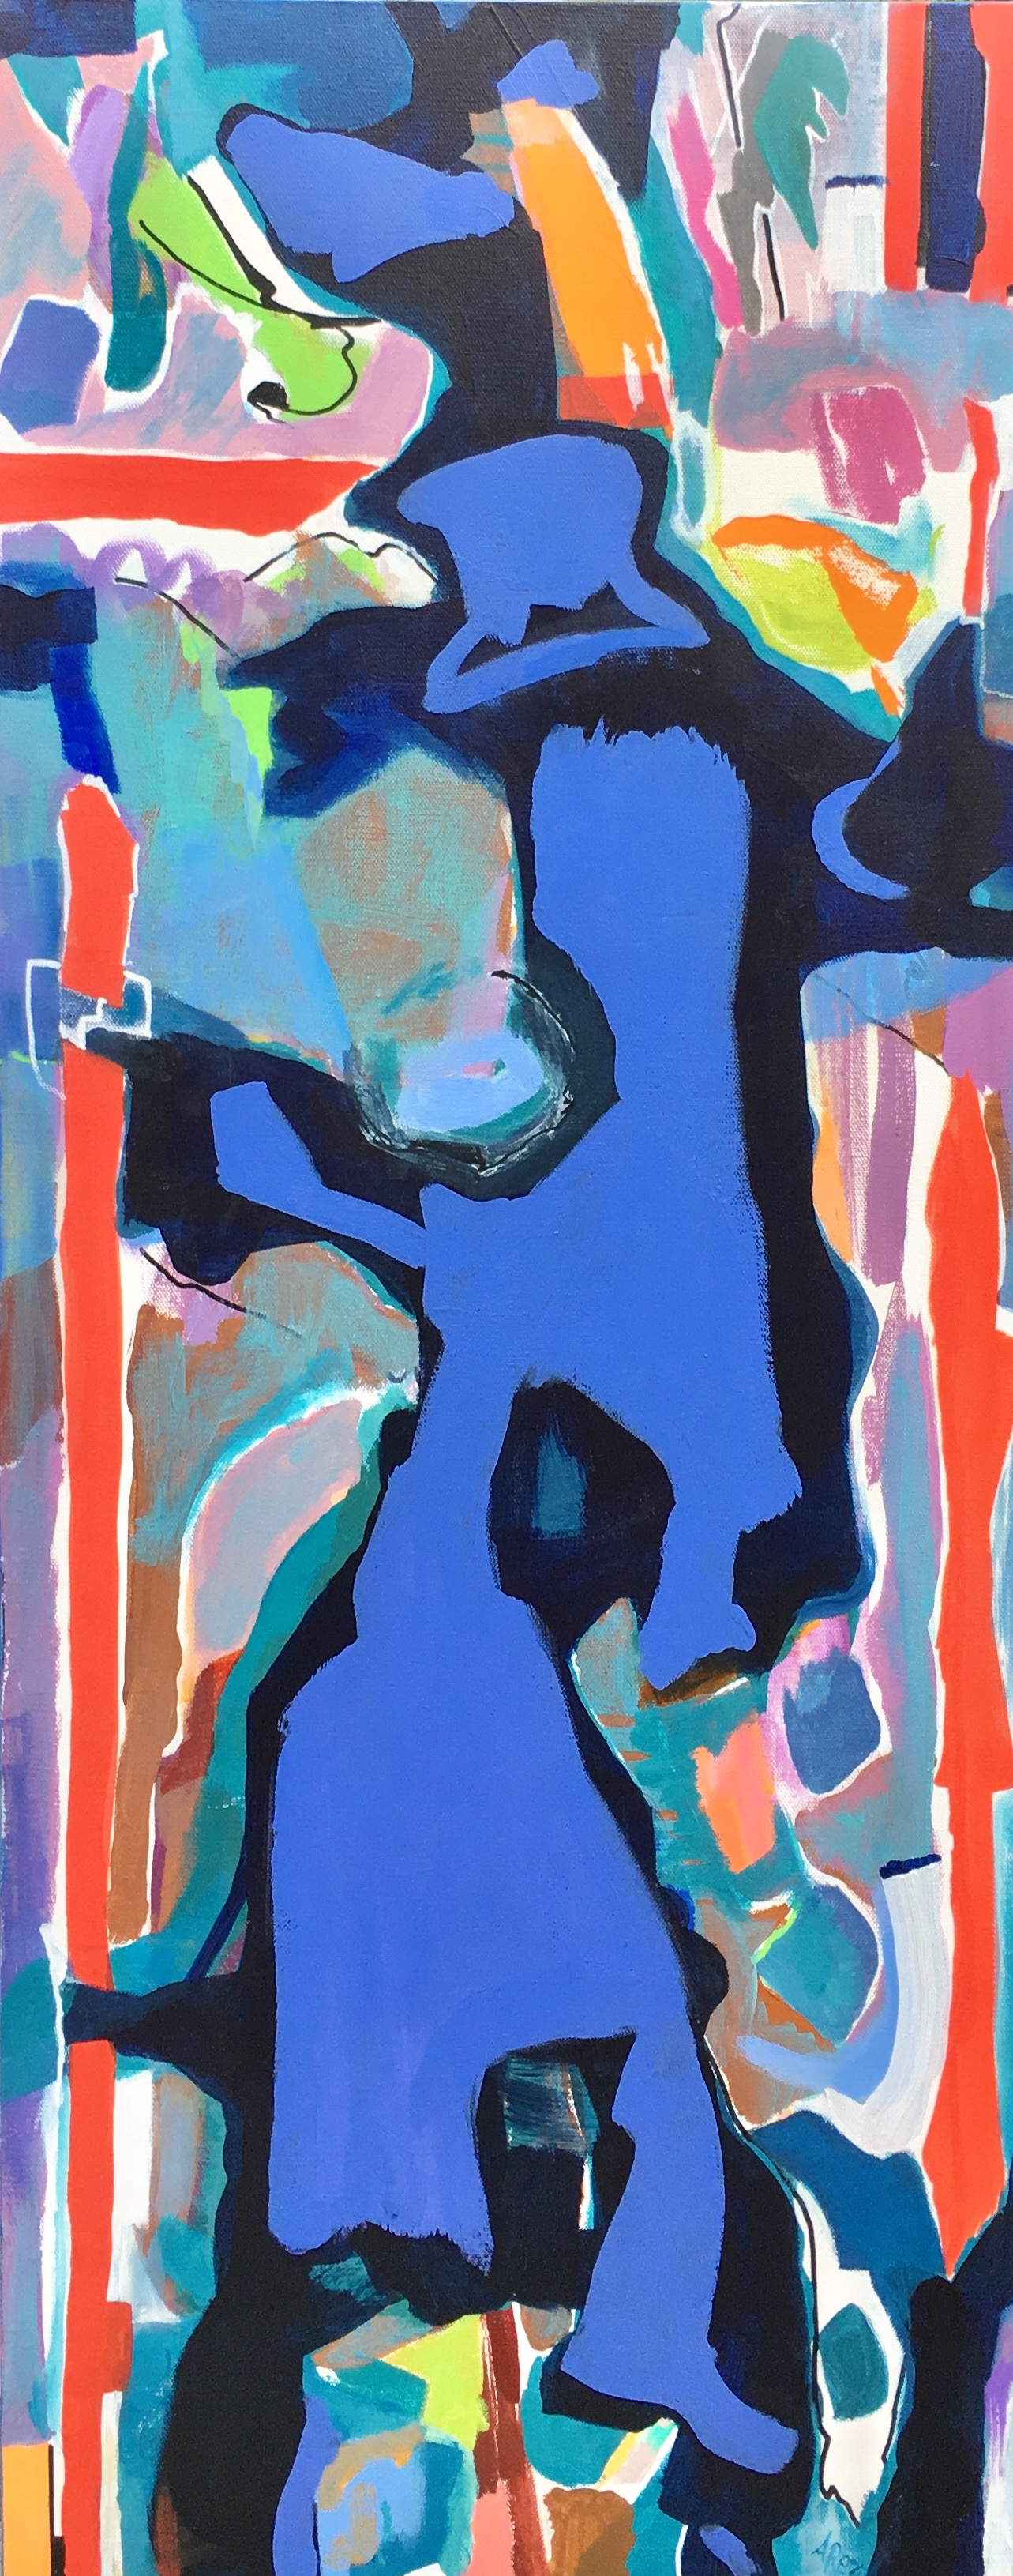 "Nightly Stroll 40"" x 16"""